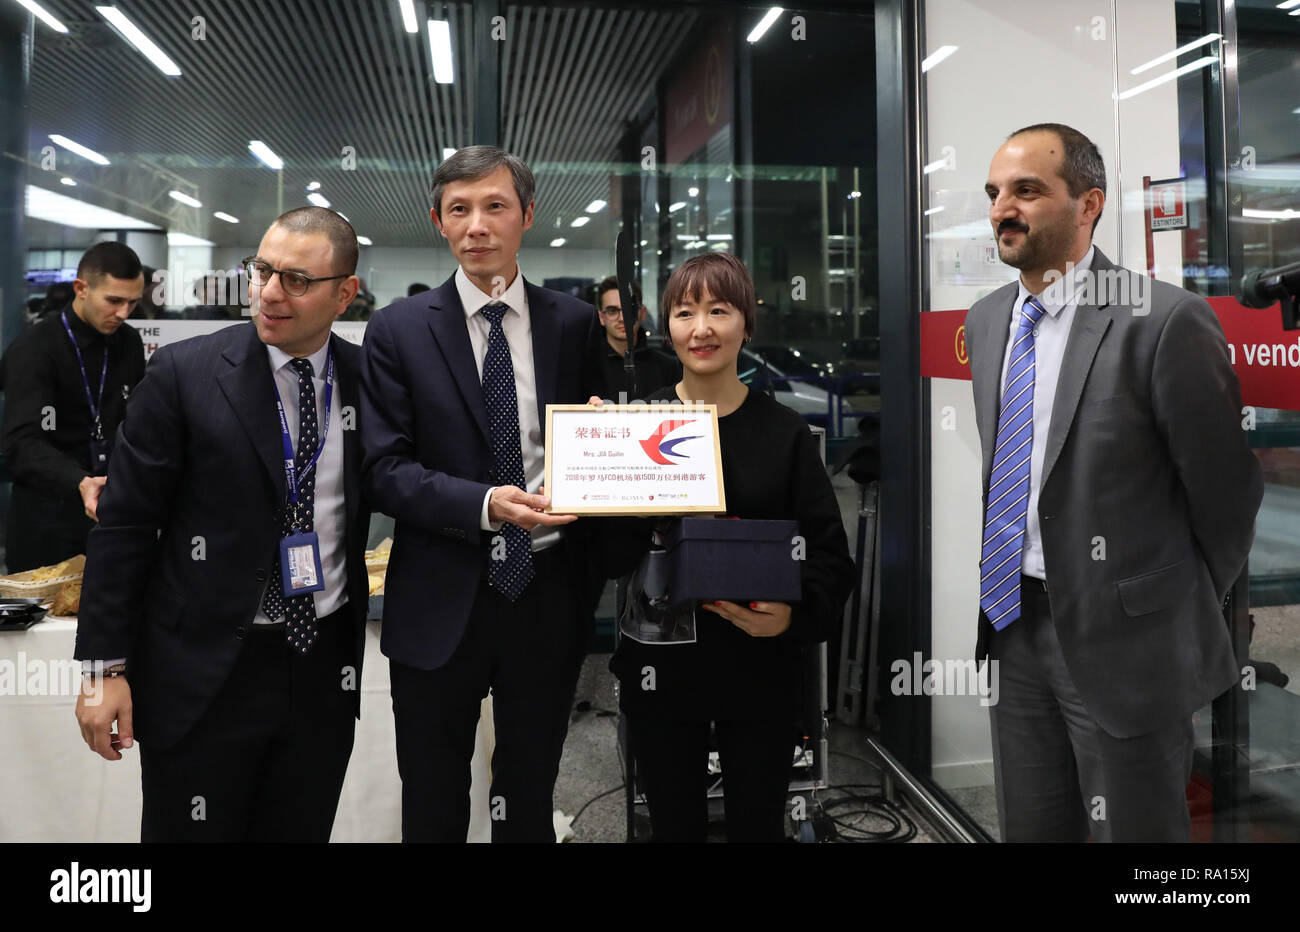 Rome, Italy. 28th Dec, 2018. Chinese passenger Jia Guilin (2nd R) is welcomed as the 15 millionth passenger of the Rome Fiumicino Airport in 2018, in Rome, capital of Italy, on Dec. 28, 2018. Credit: Cheng Tingting/Xinhua/Alamy Live News - Stock Image